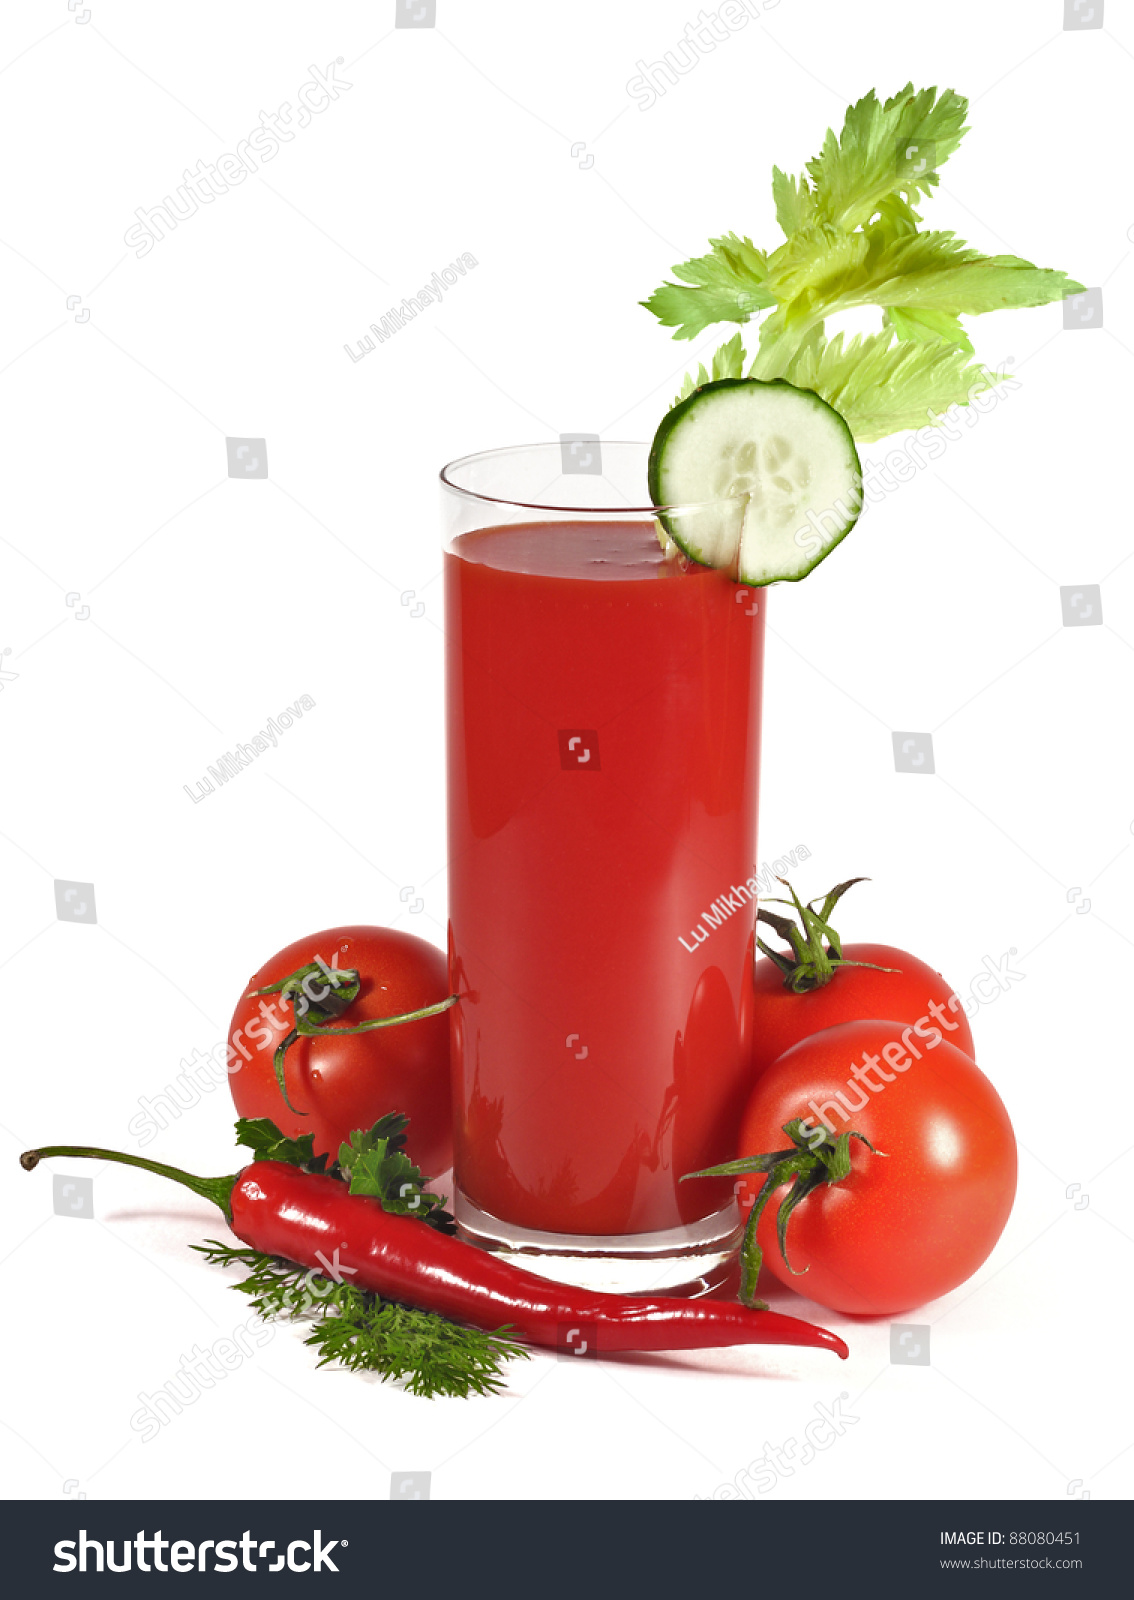 tomato-juice-isolated-on-white-background-with-tomatoes-chilli-pepper ...